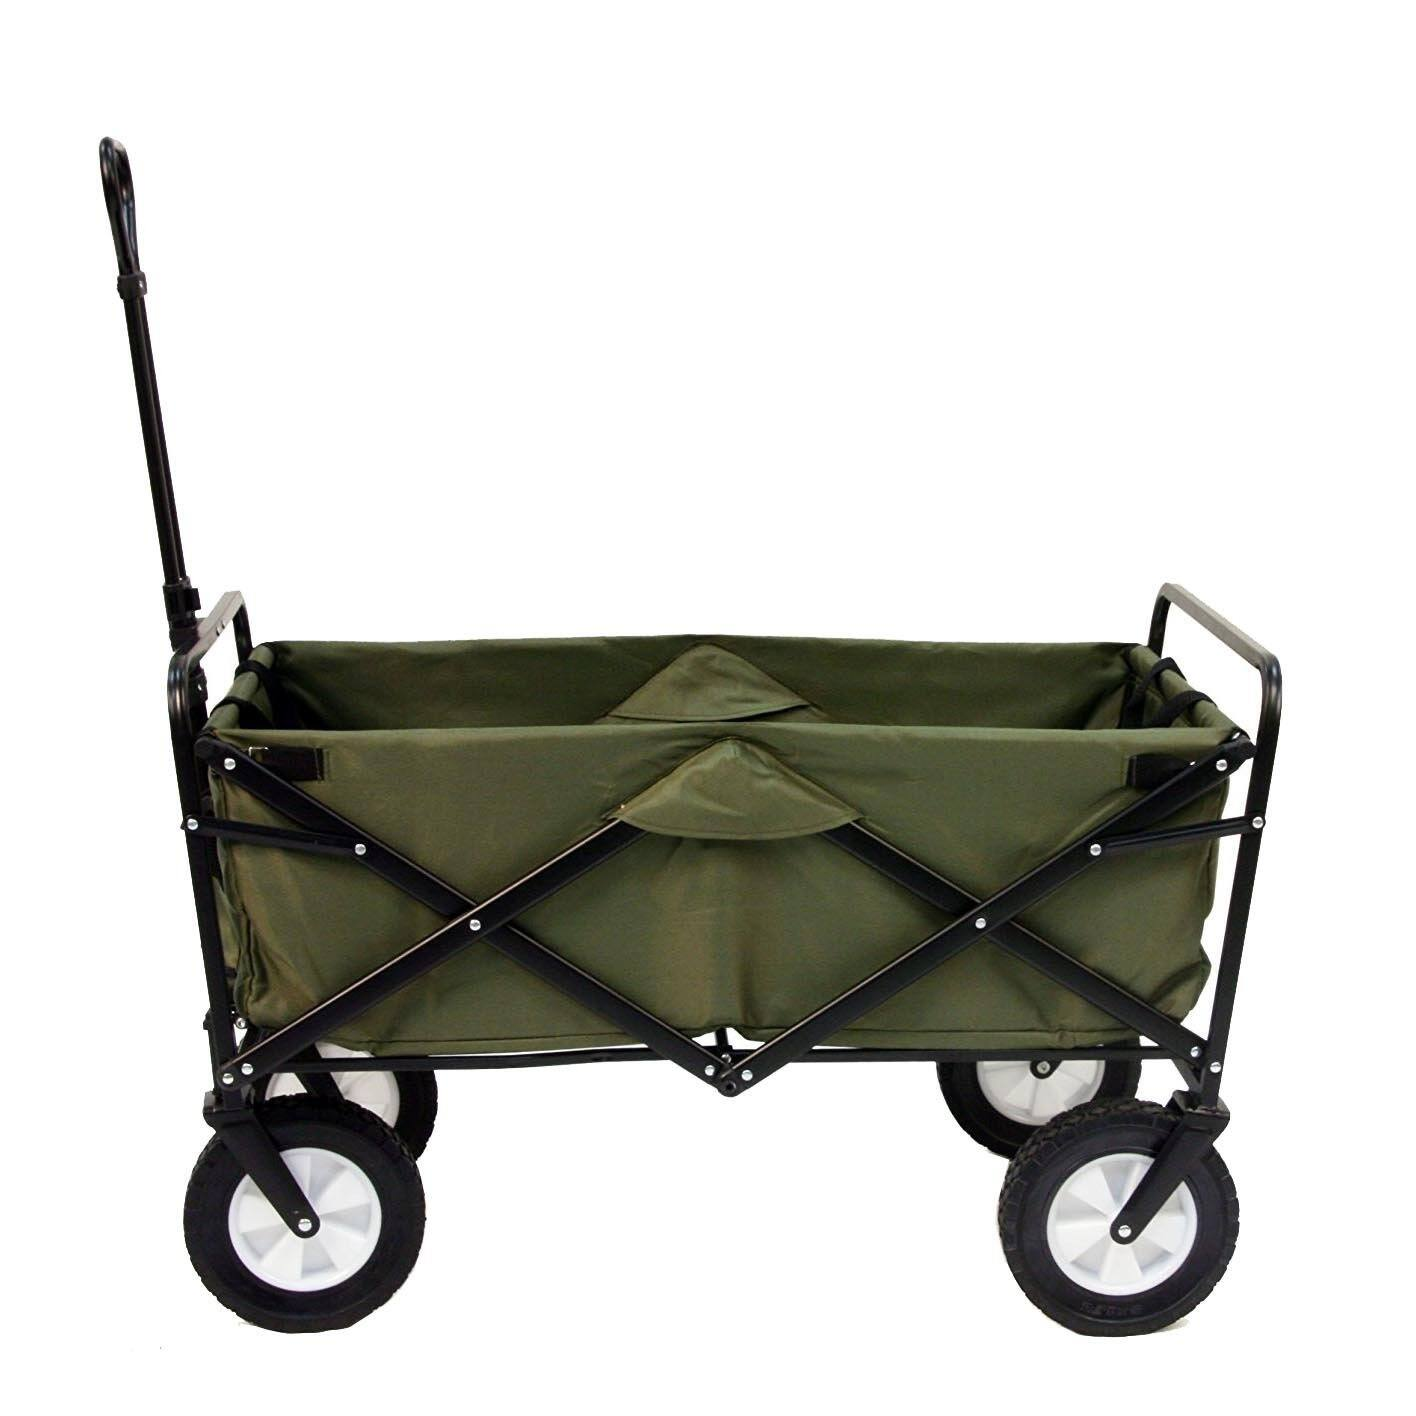 Mac Sports Collapsible Folding Outdoor Utility Wagon, Green $49.99